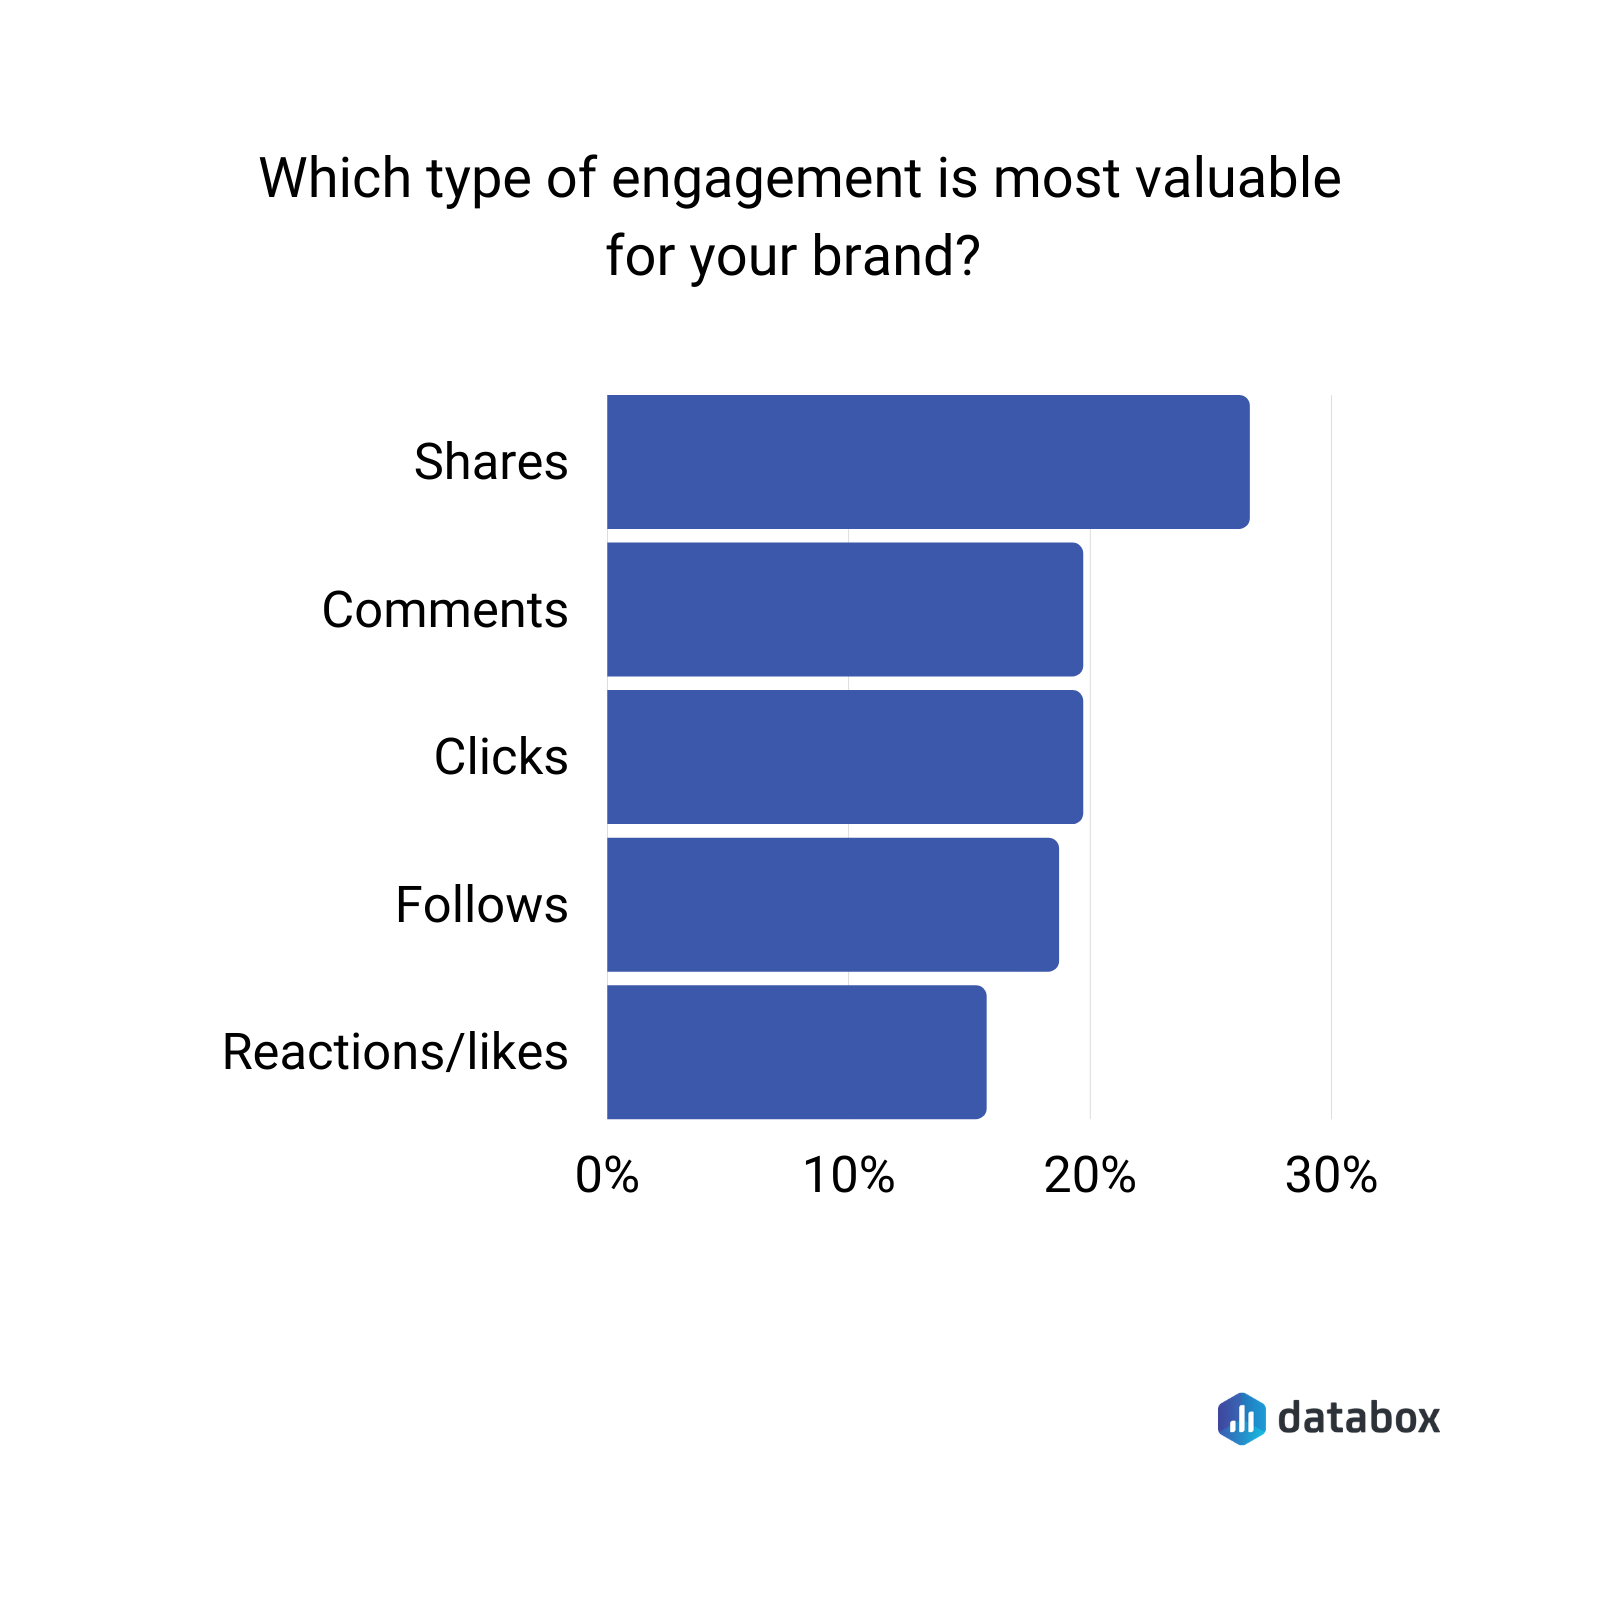 What type of engagement is most valuable for your brand?